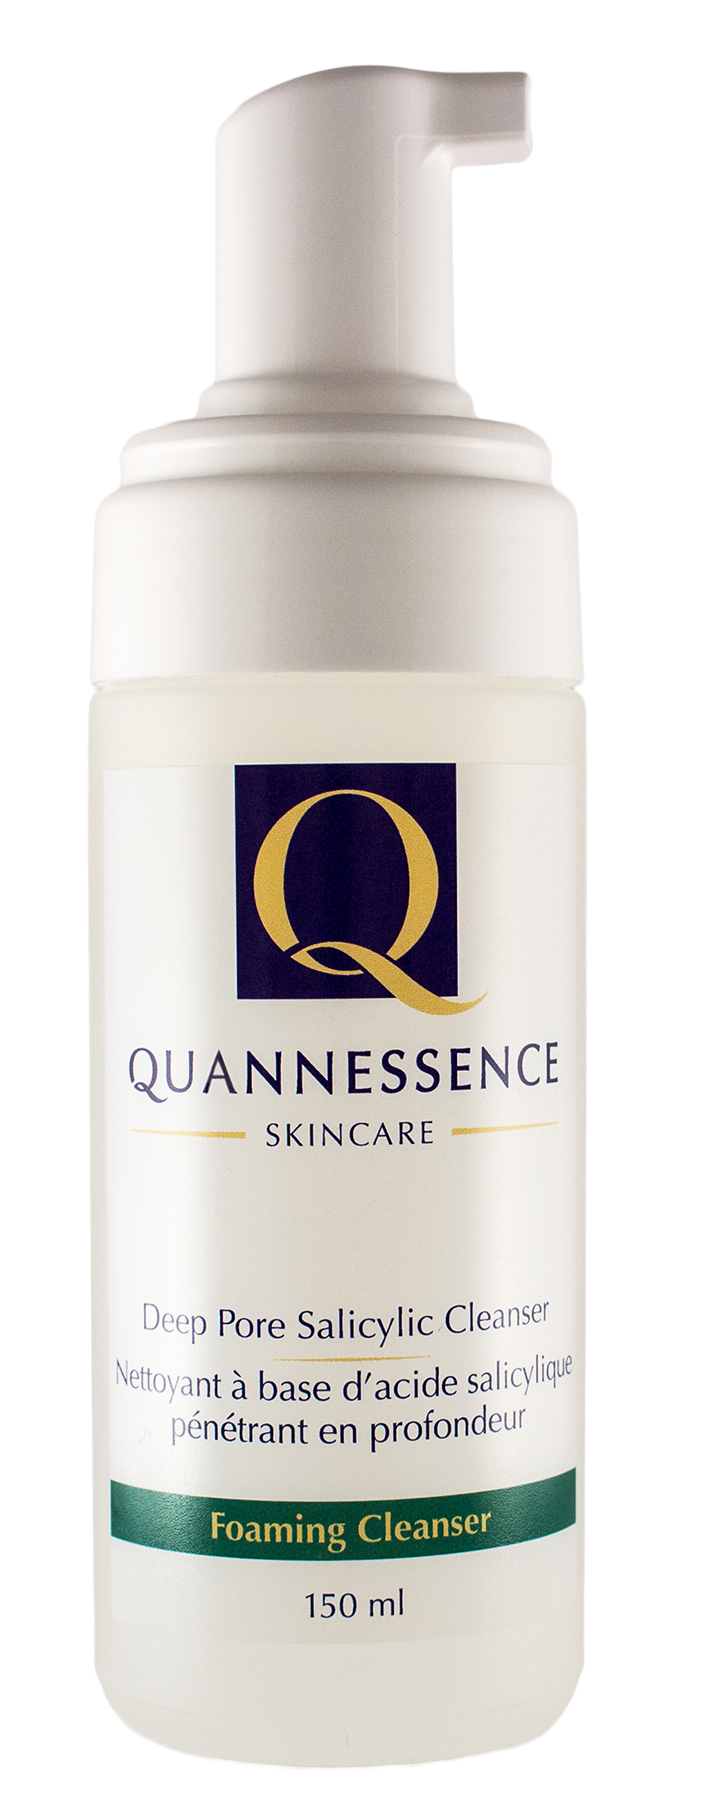 Quannessence Deep Pore Salicylic Cleanser (150 ml)